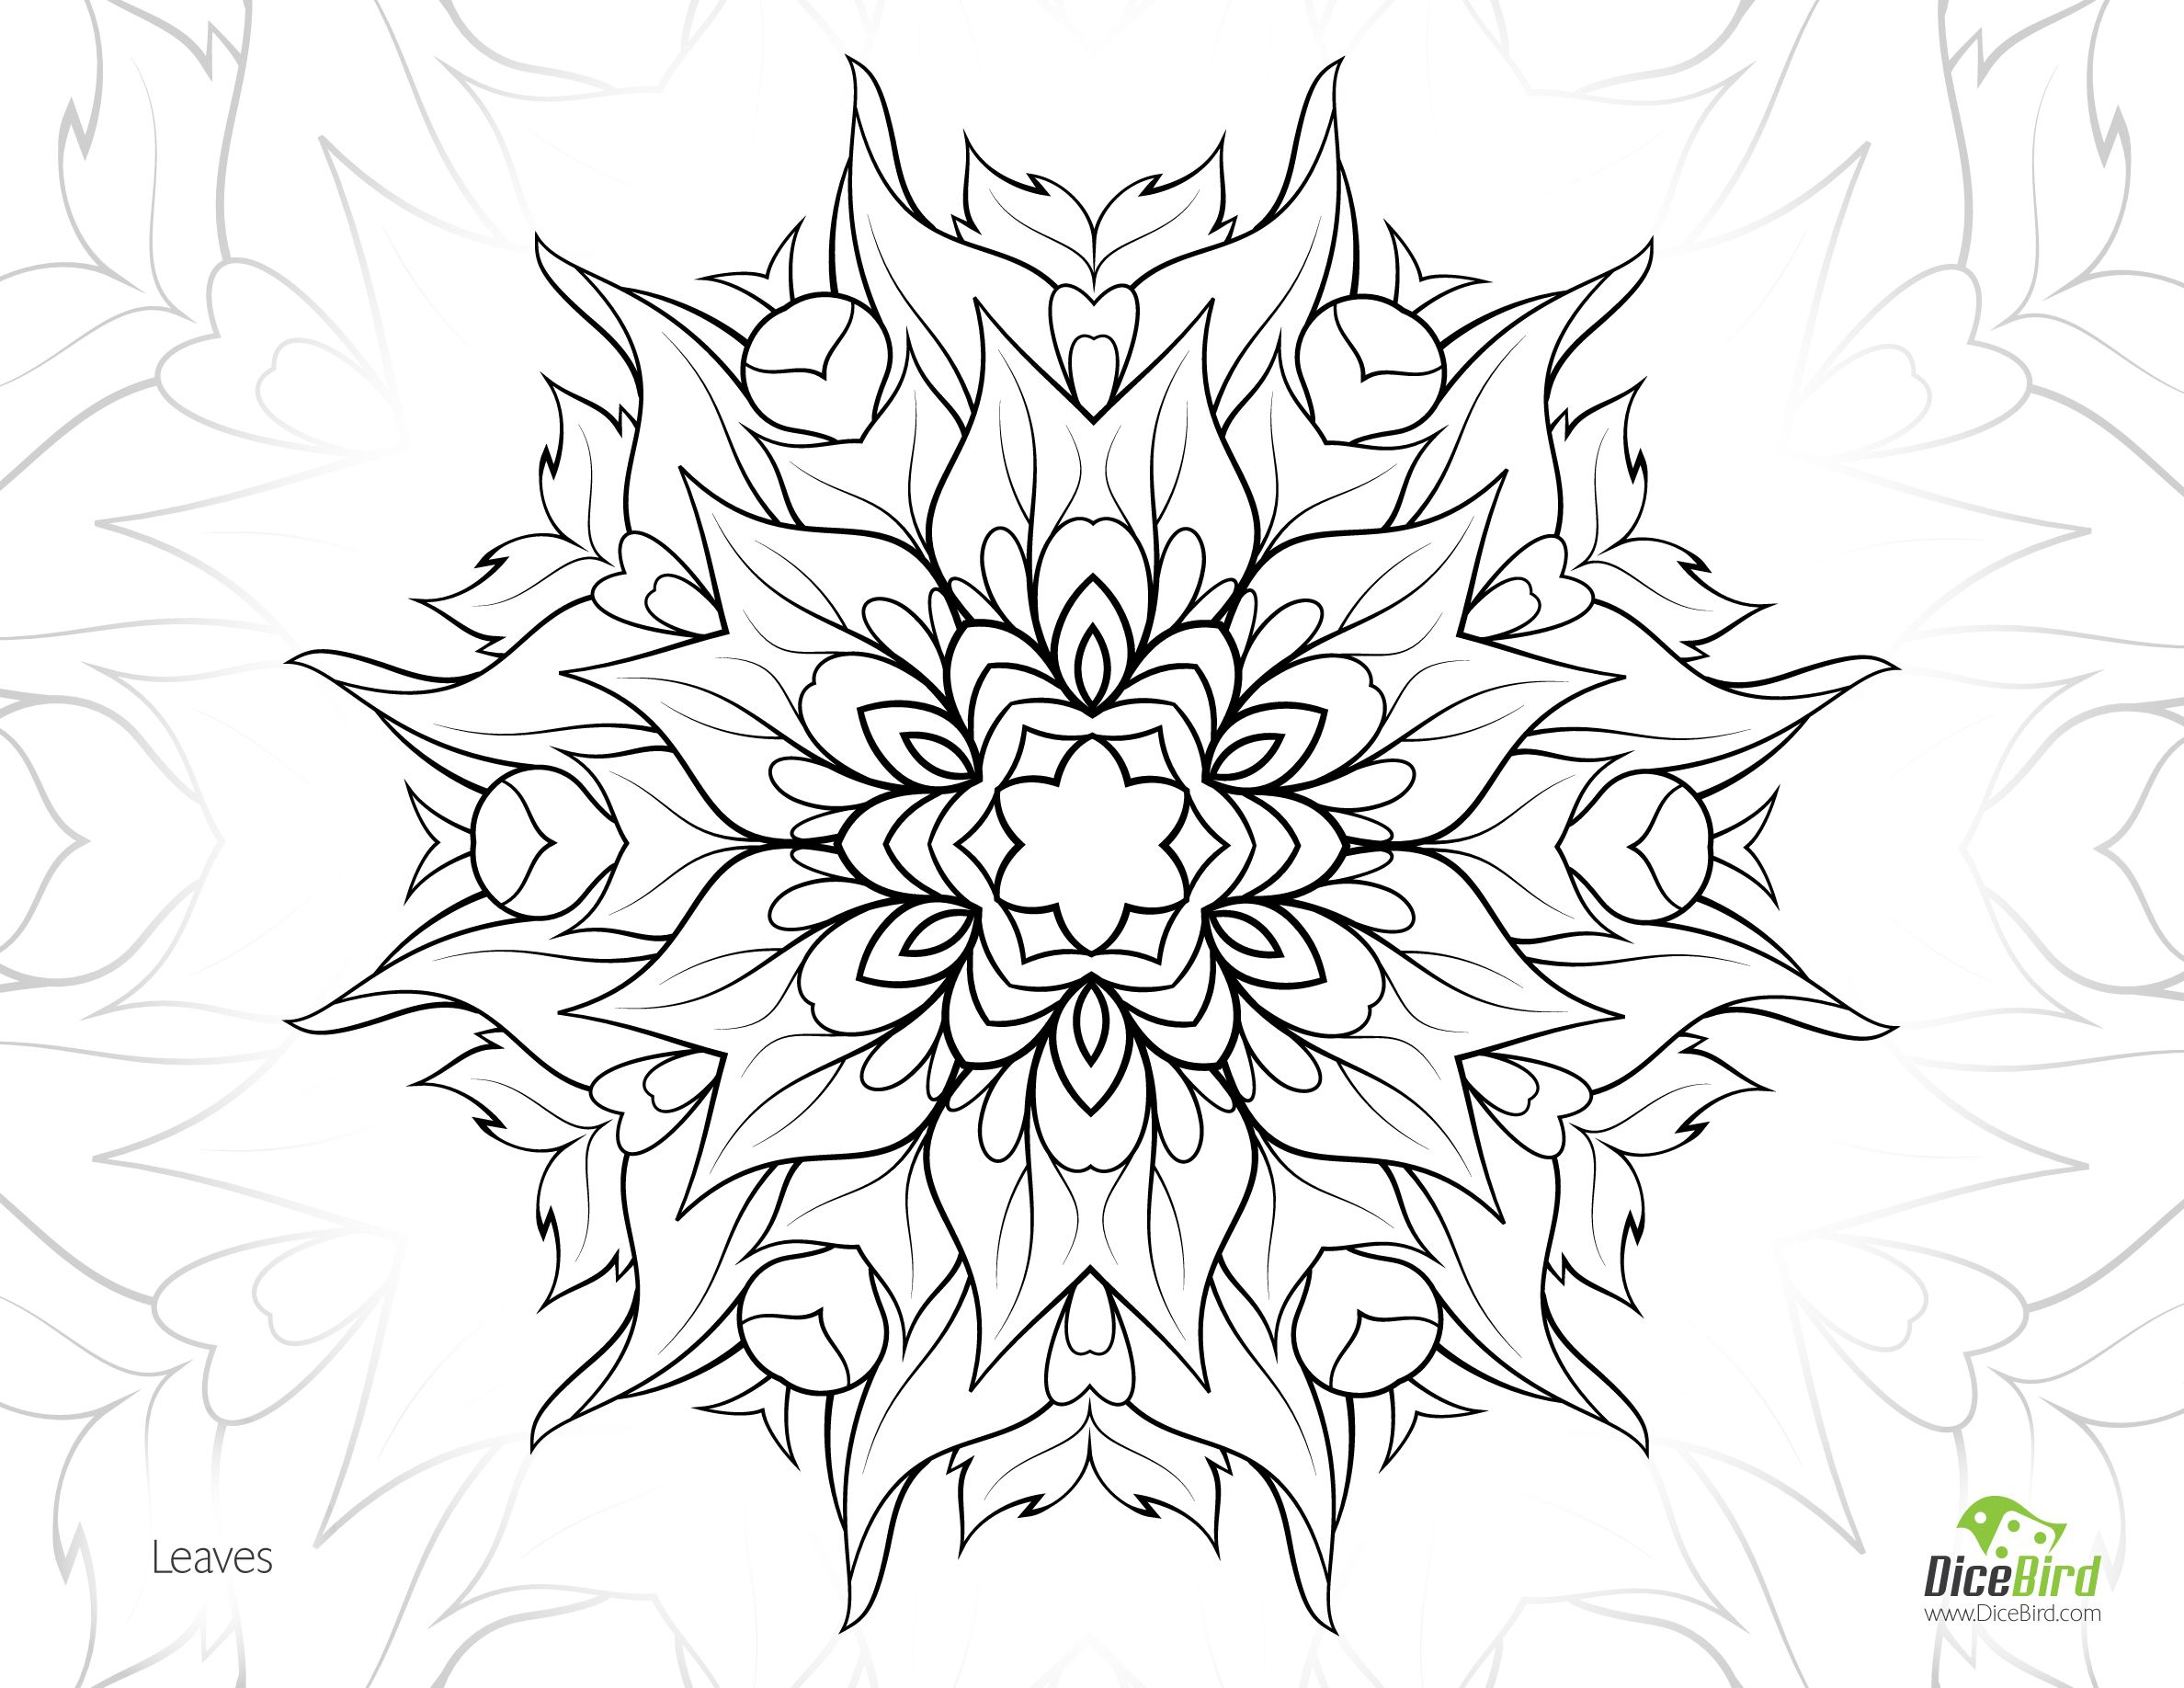 Colouring in pictures of flowers - Leaves Flower Free Adult Printable Mandala Colouring Page